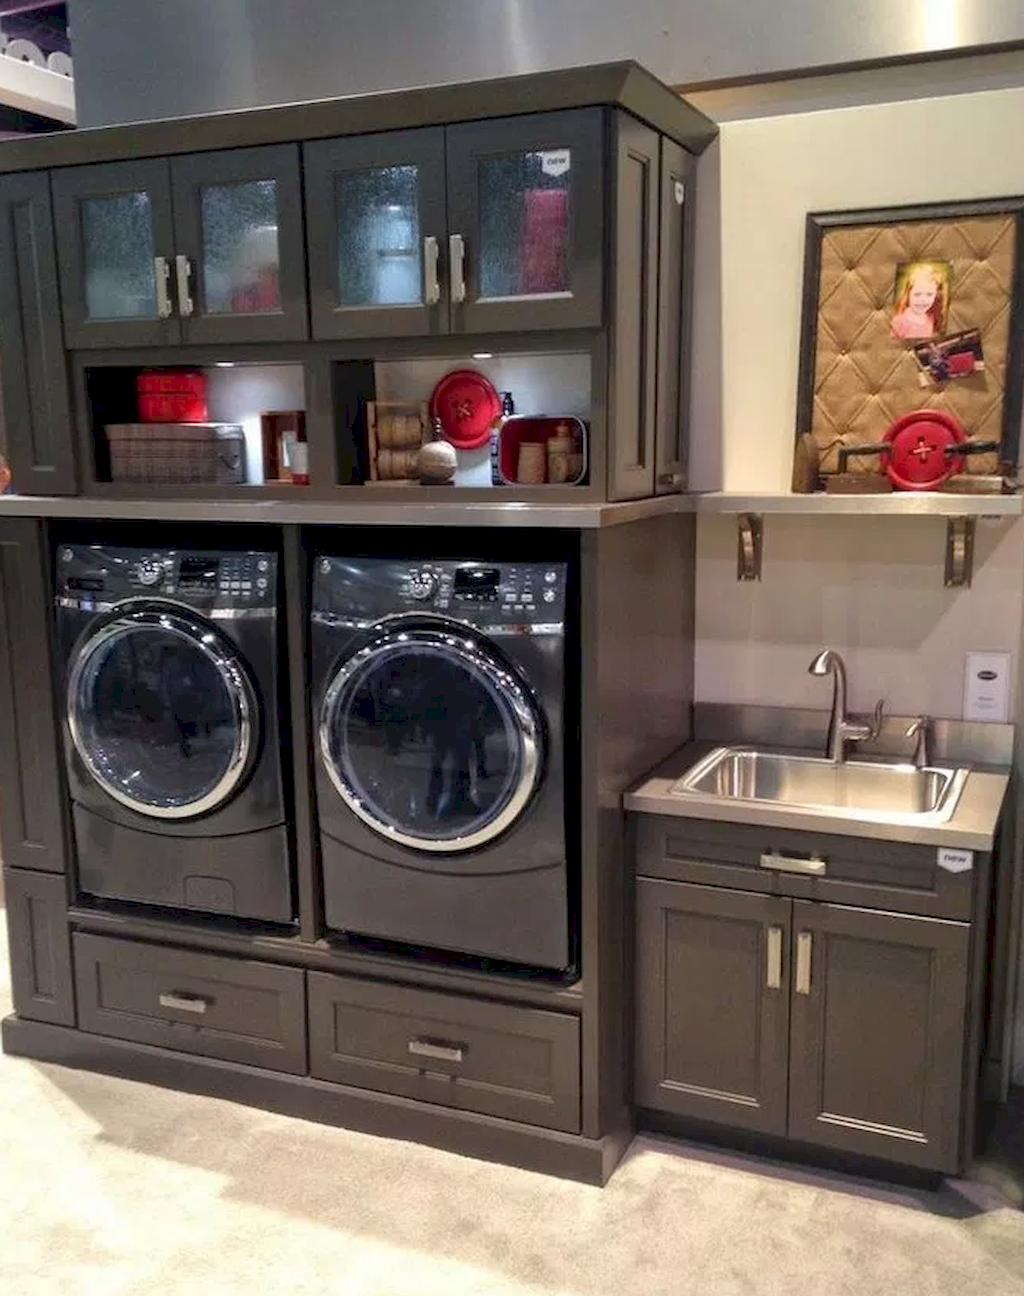 Miraculous How to design a small laundry room